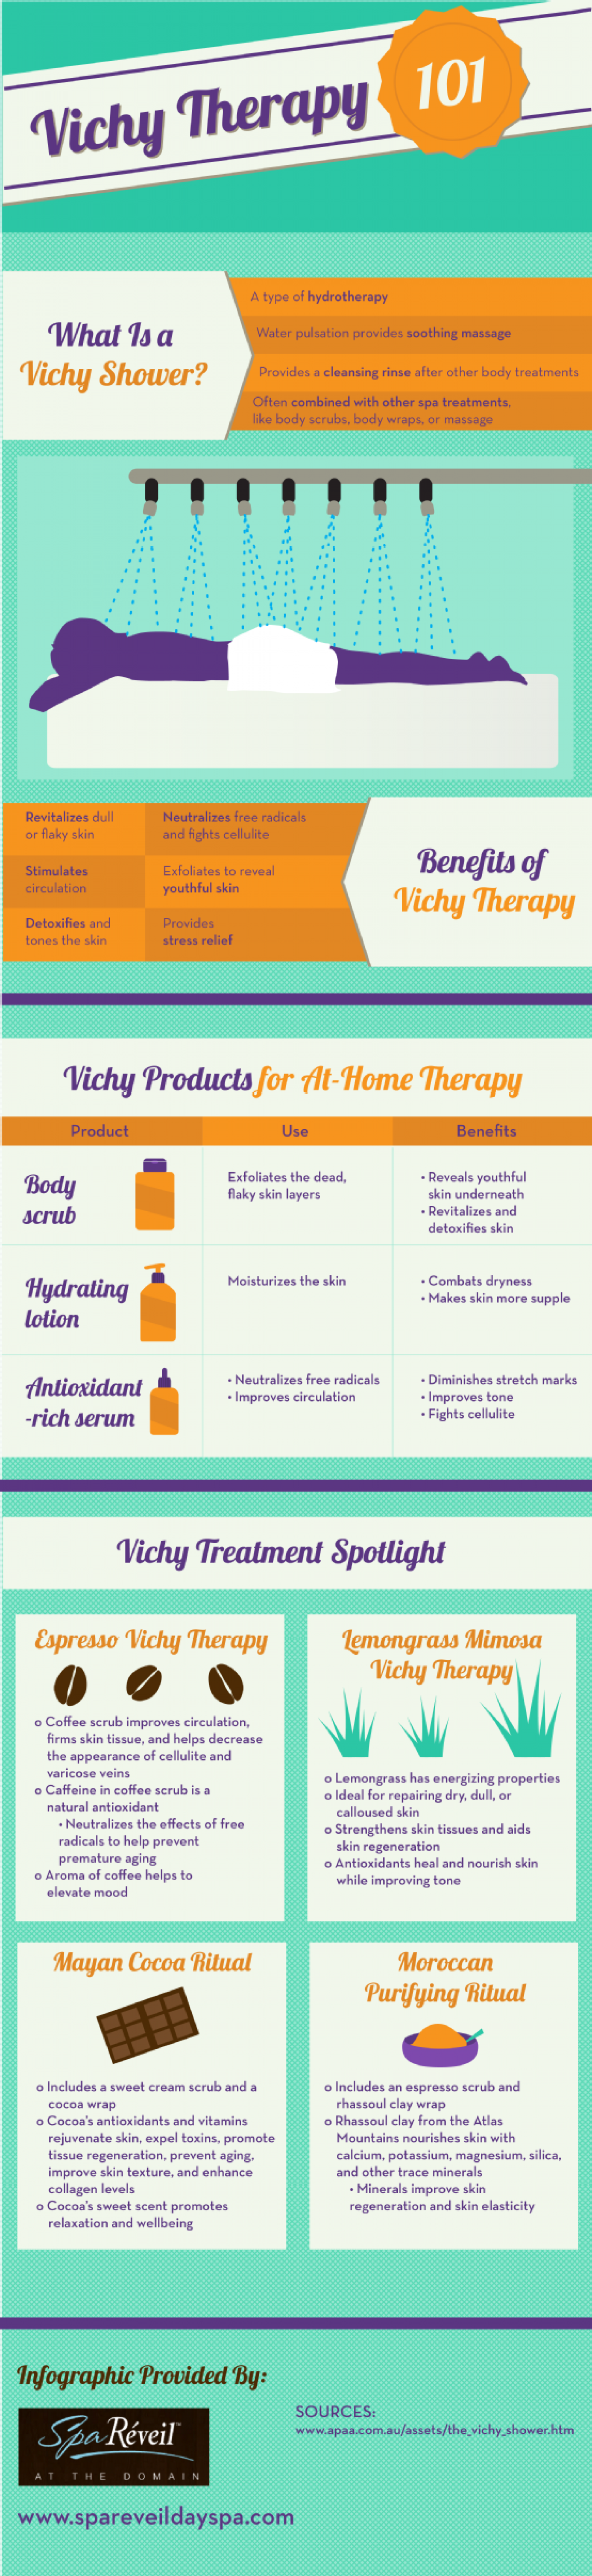 Vichy Therapy 101 Infographic